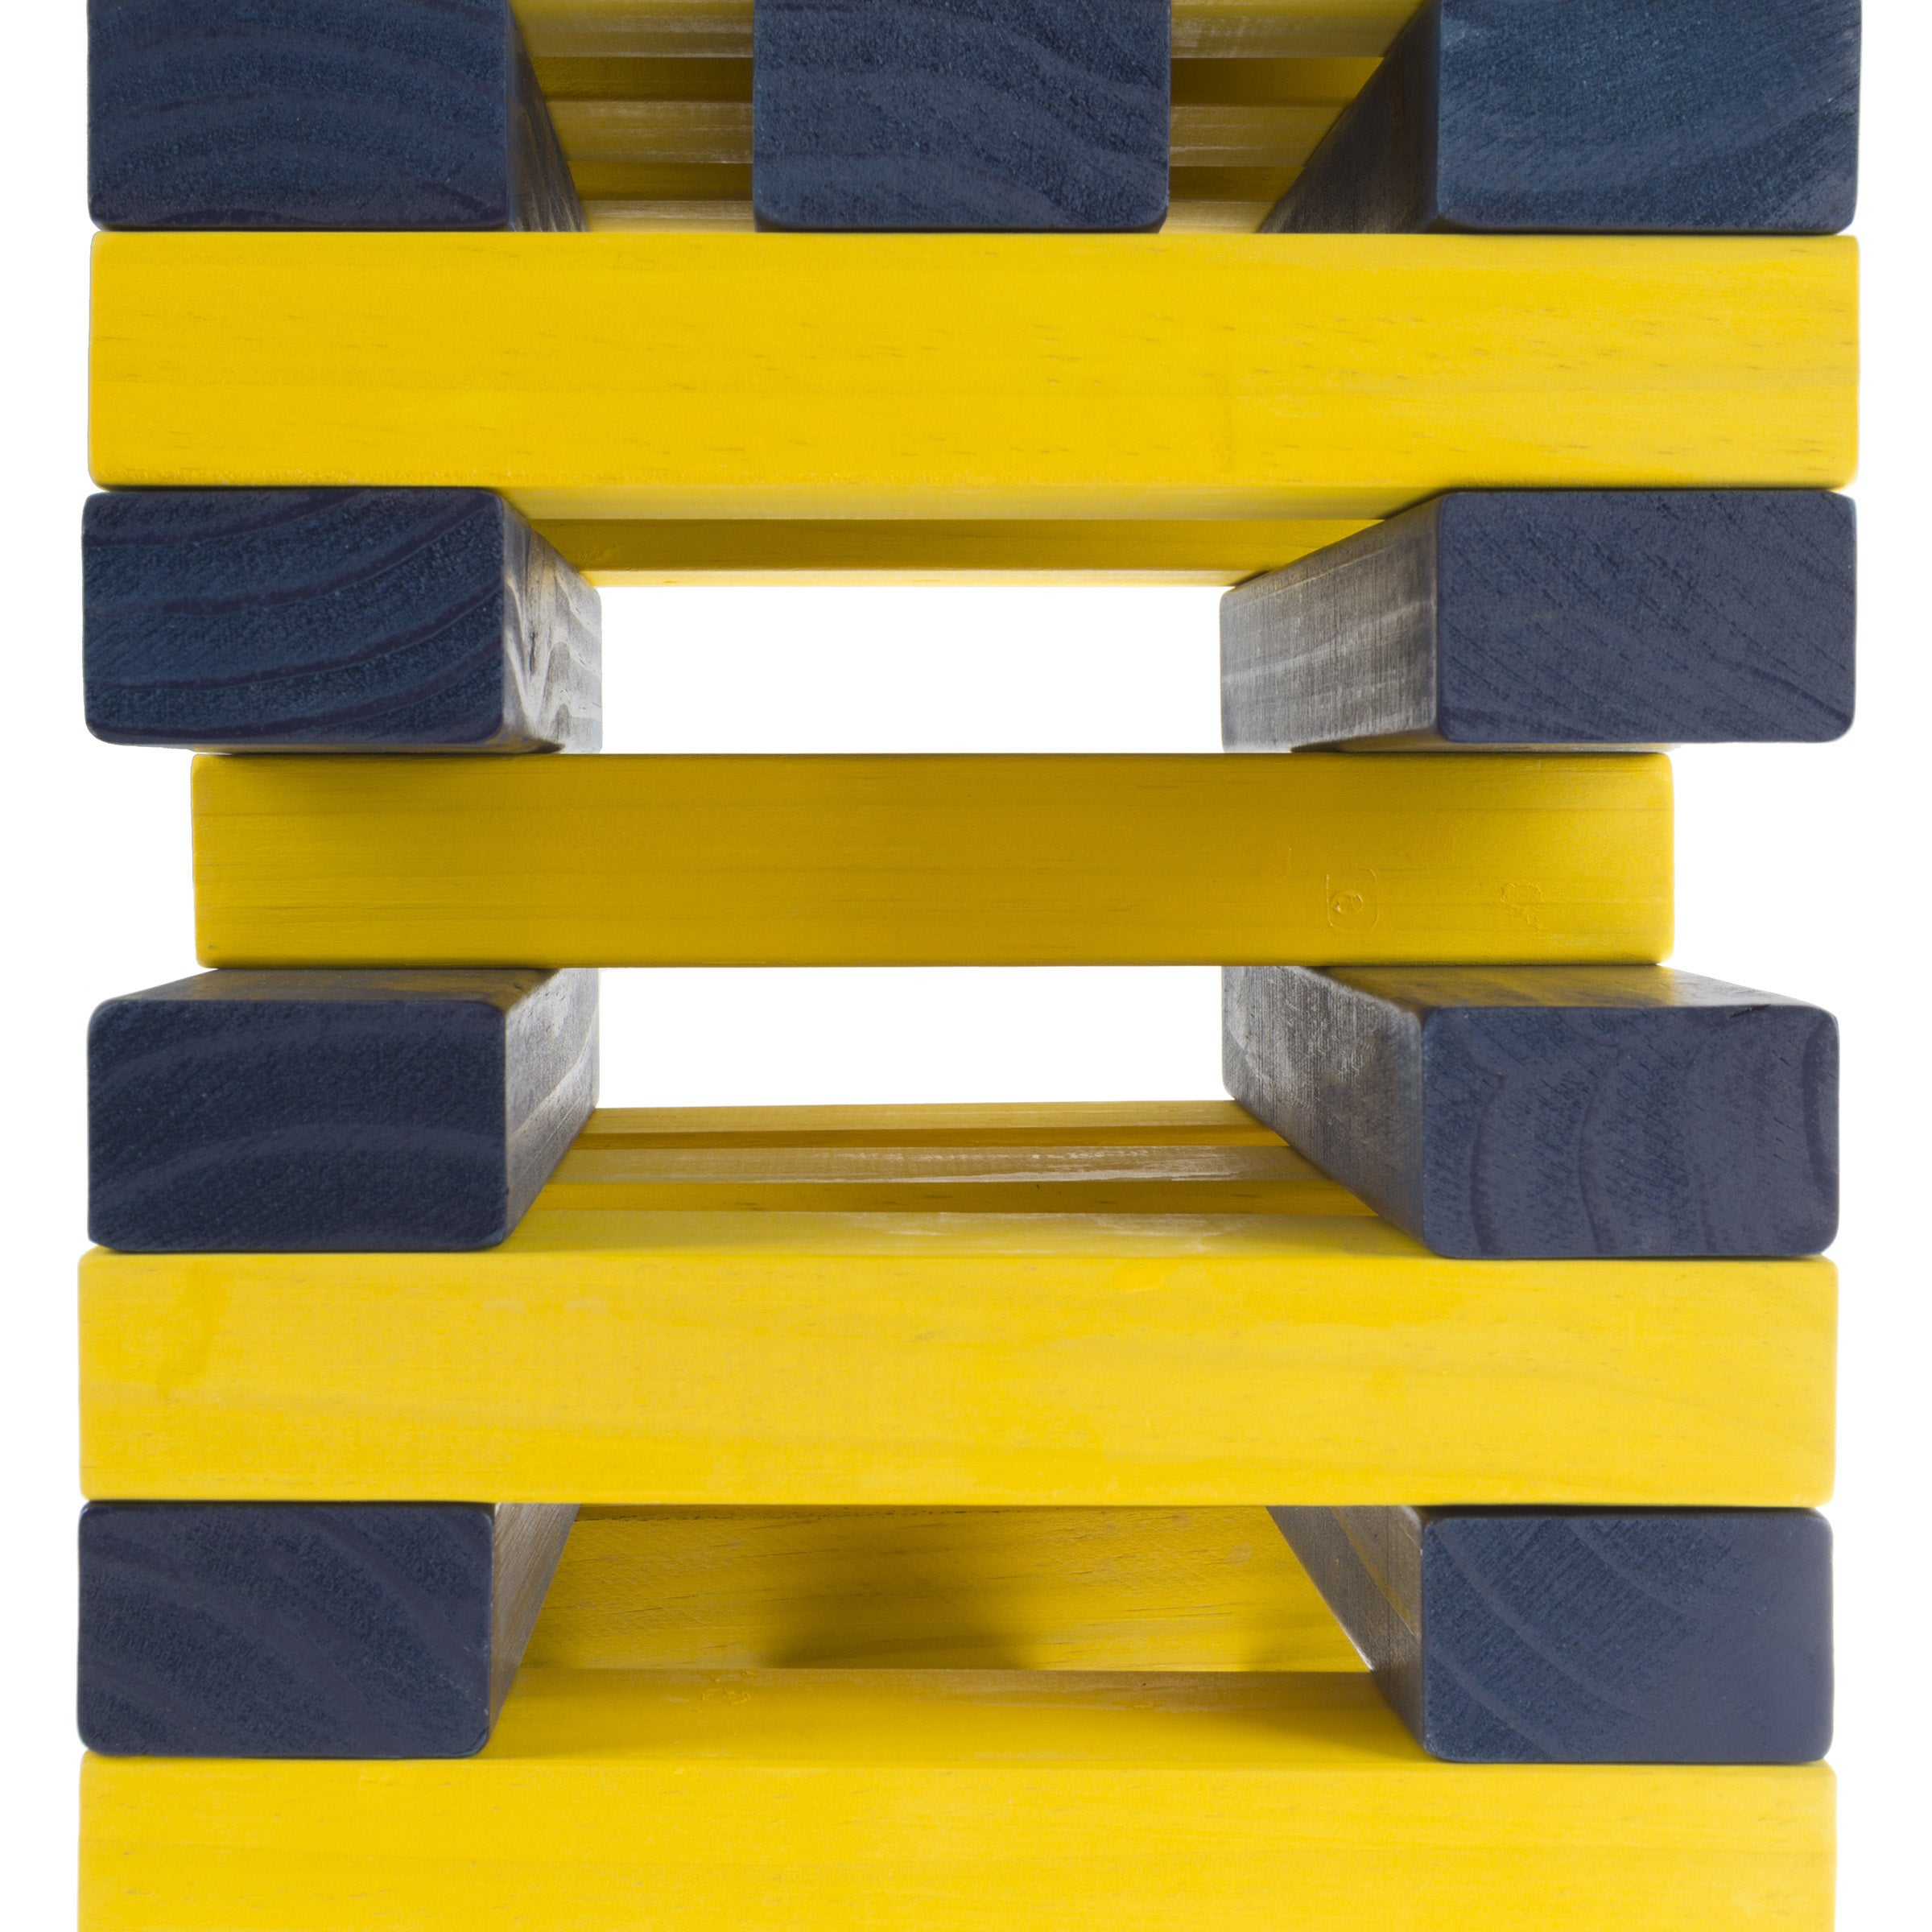 Outdoor Yard Giant Wooden Blocks Tower Stacking Game By Hey Play